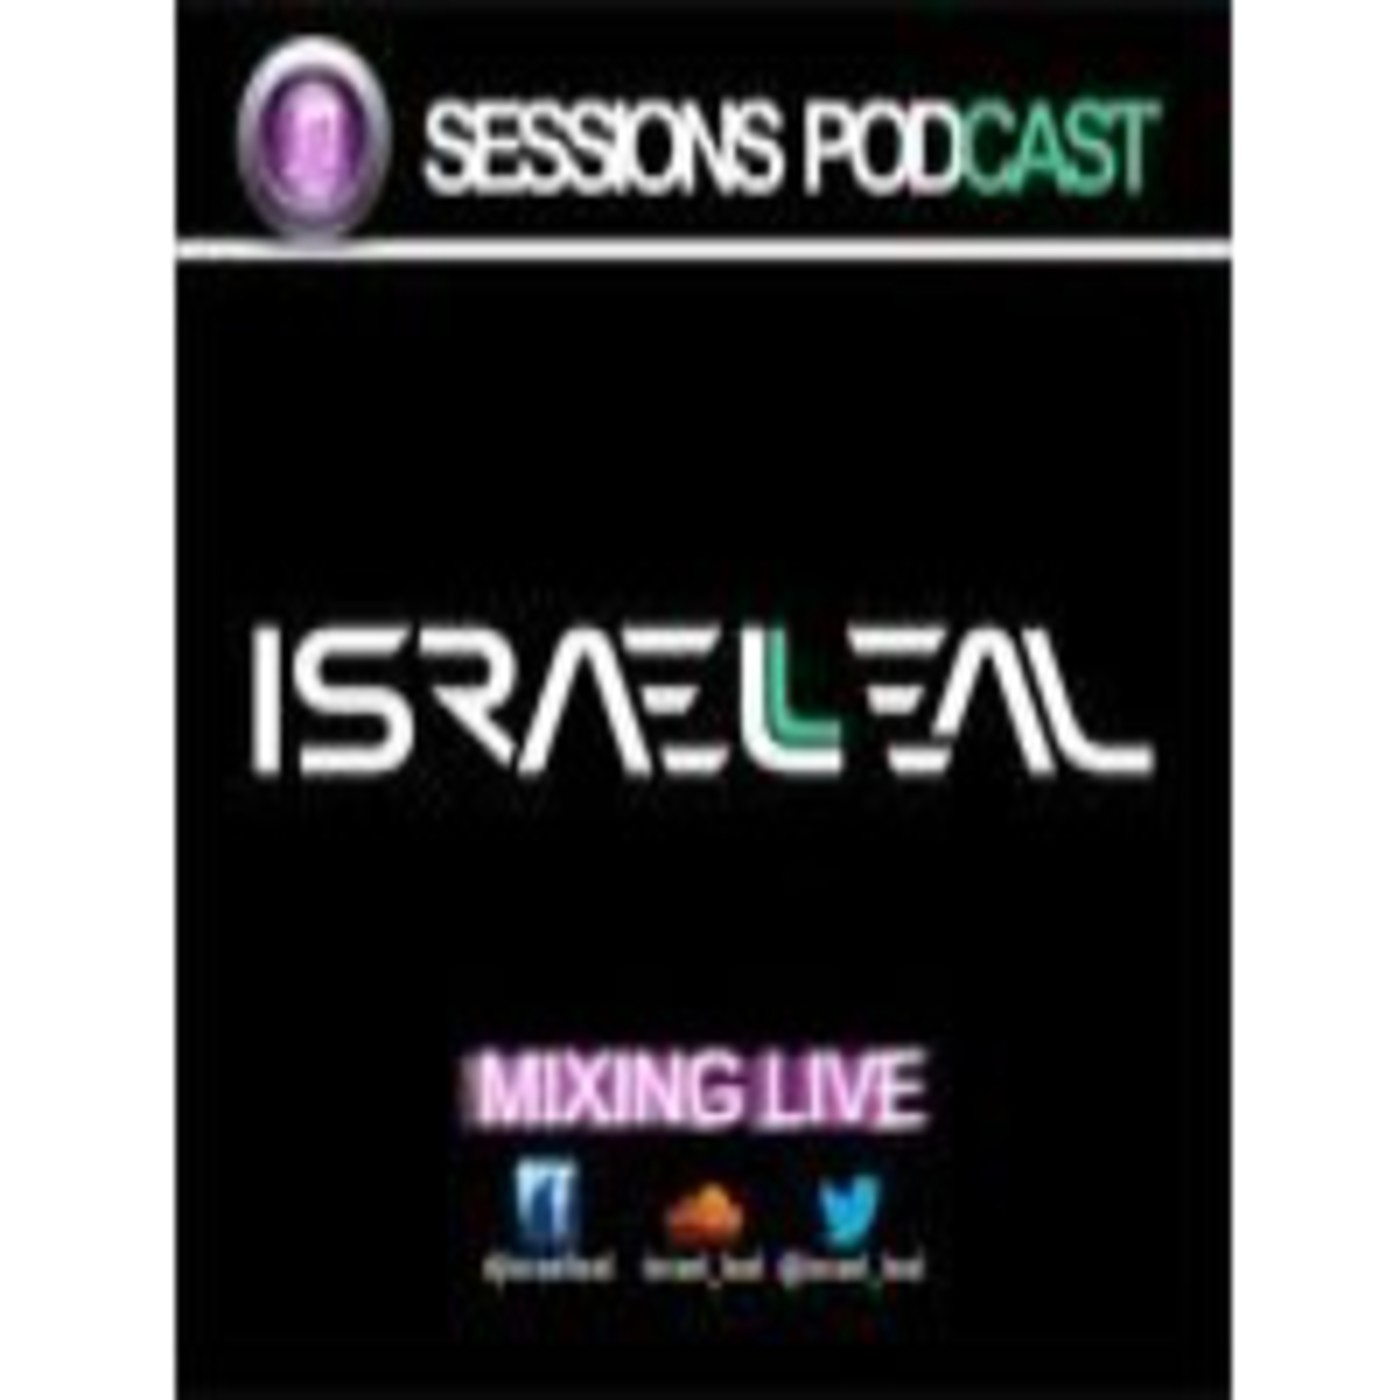 Israel Leal  Sessions Podcast